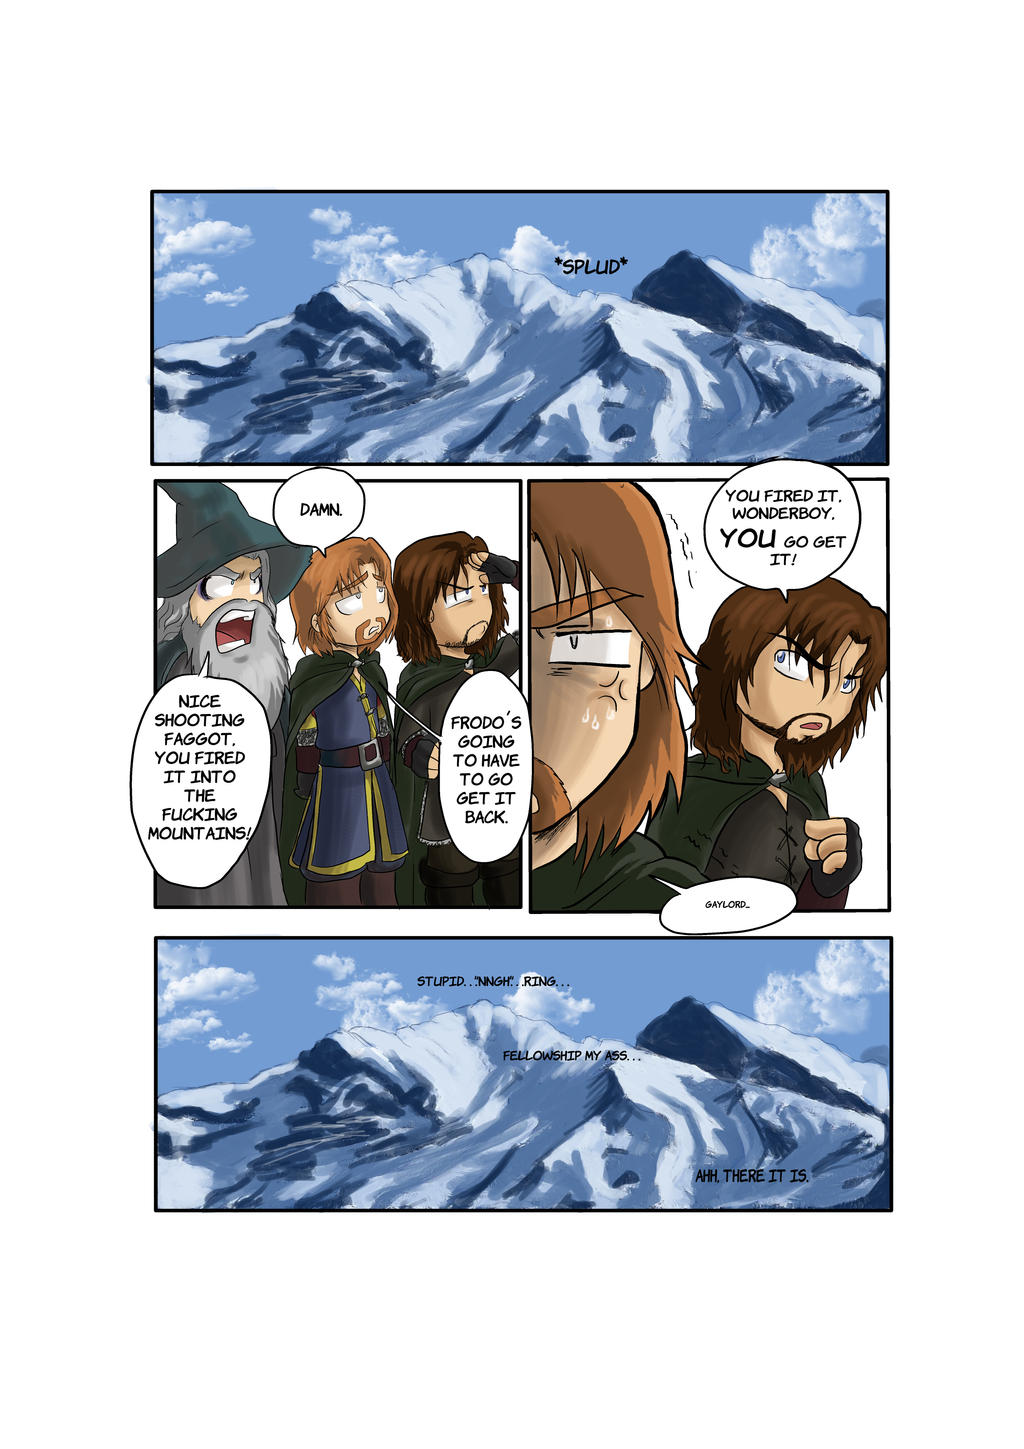 TLOTR Parody 4-8 by black3